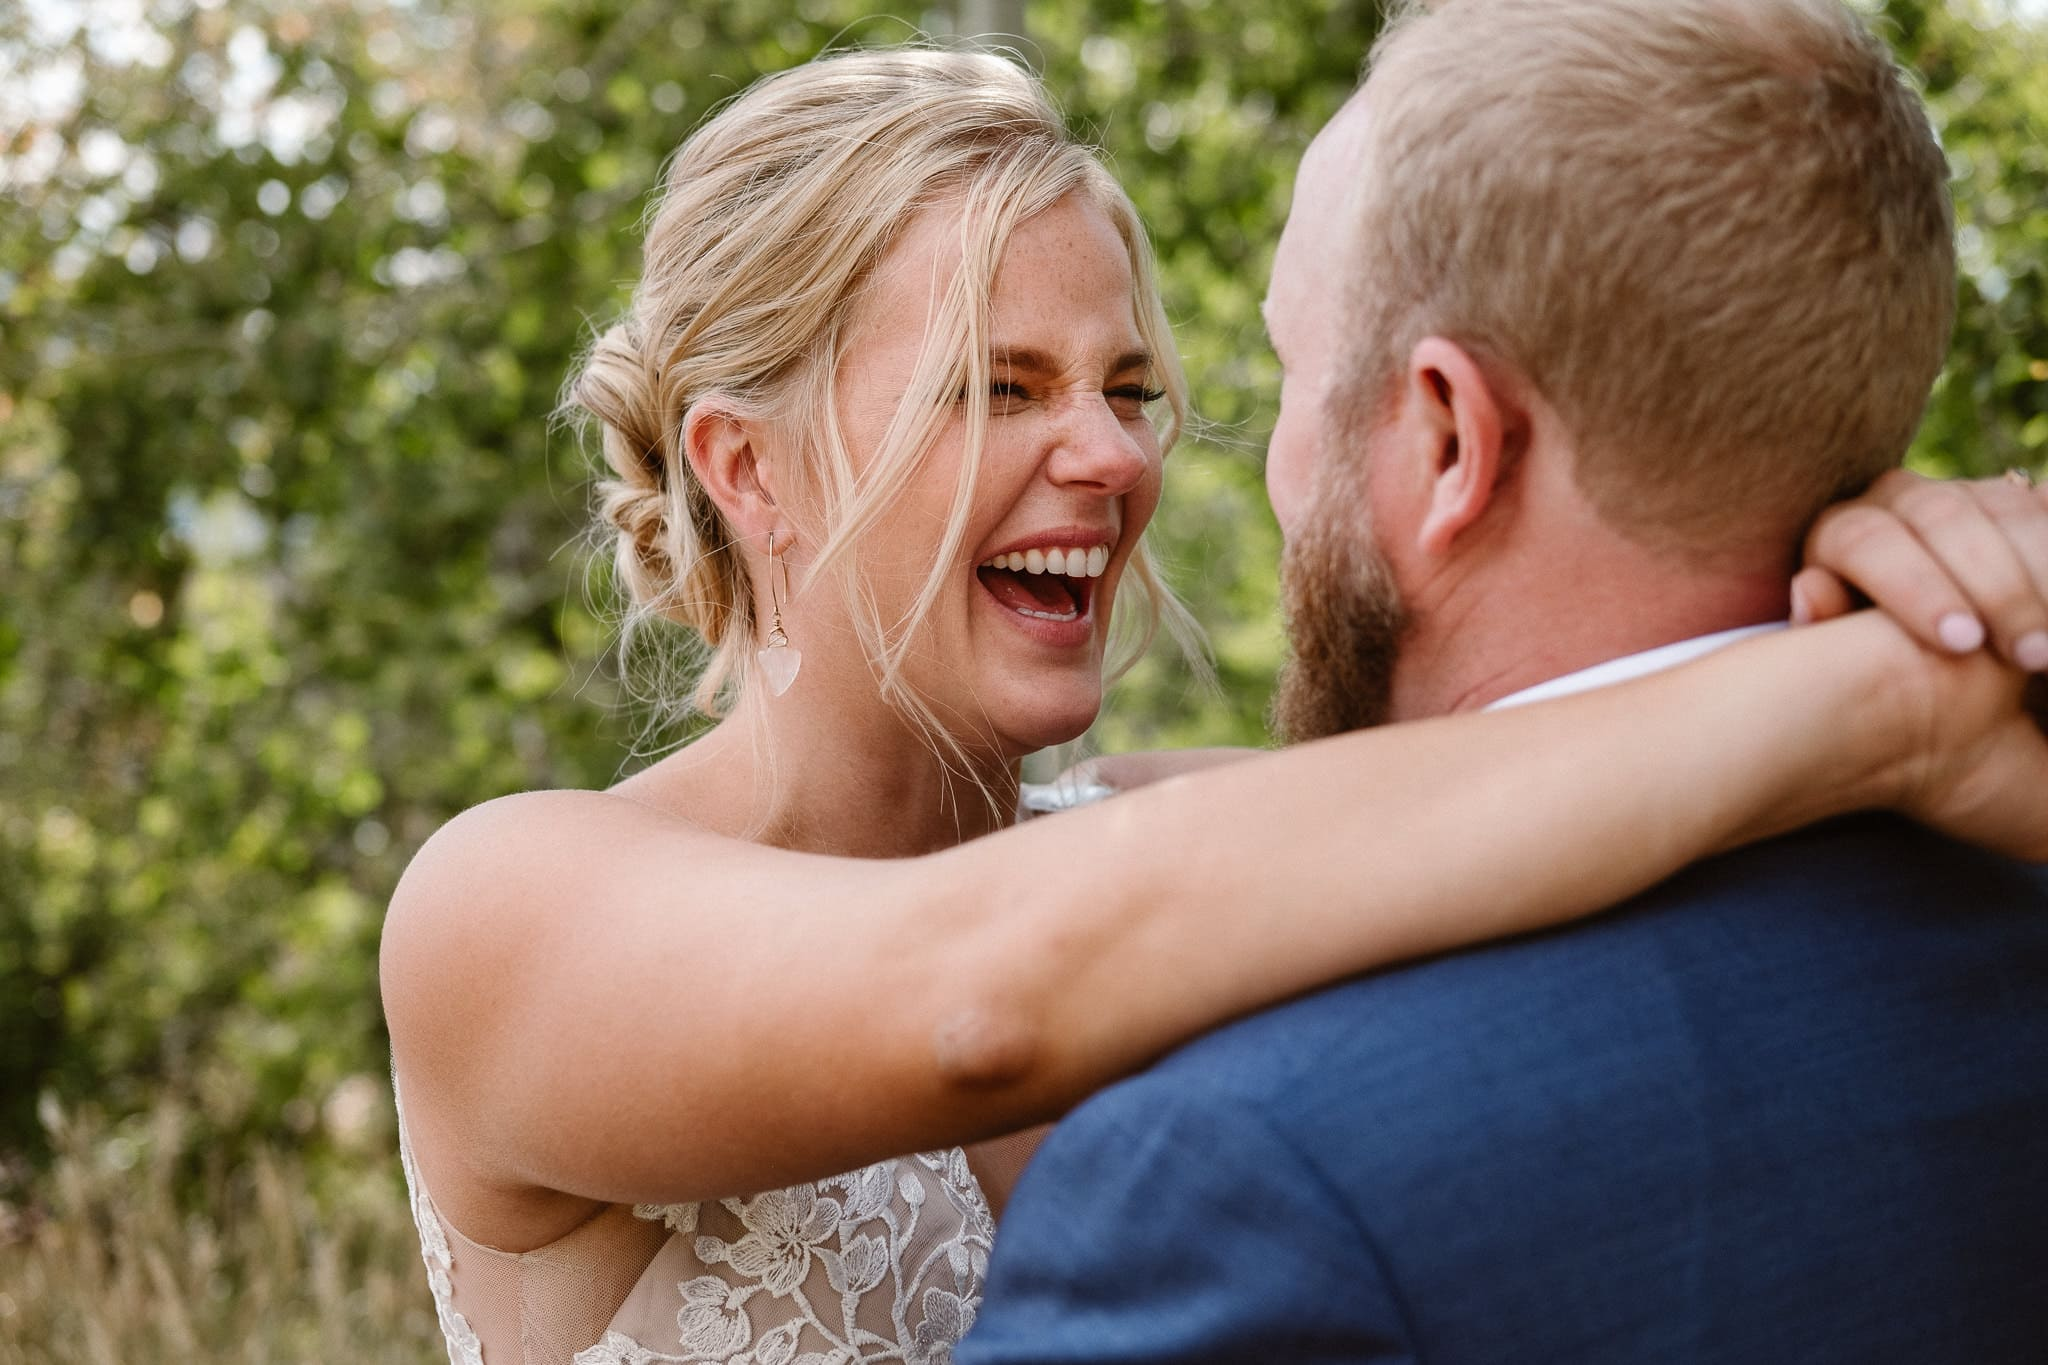 Steamboat Springs wedding photographer, La Joya Dulce wedding, Colorado ranch wedding venues, bride and groom portraits, bride laughing